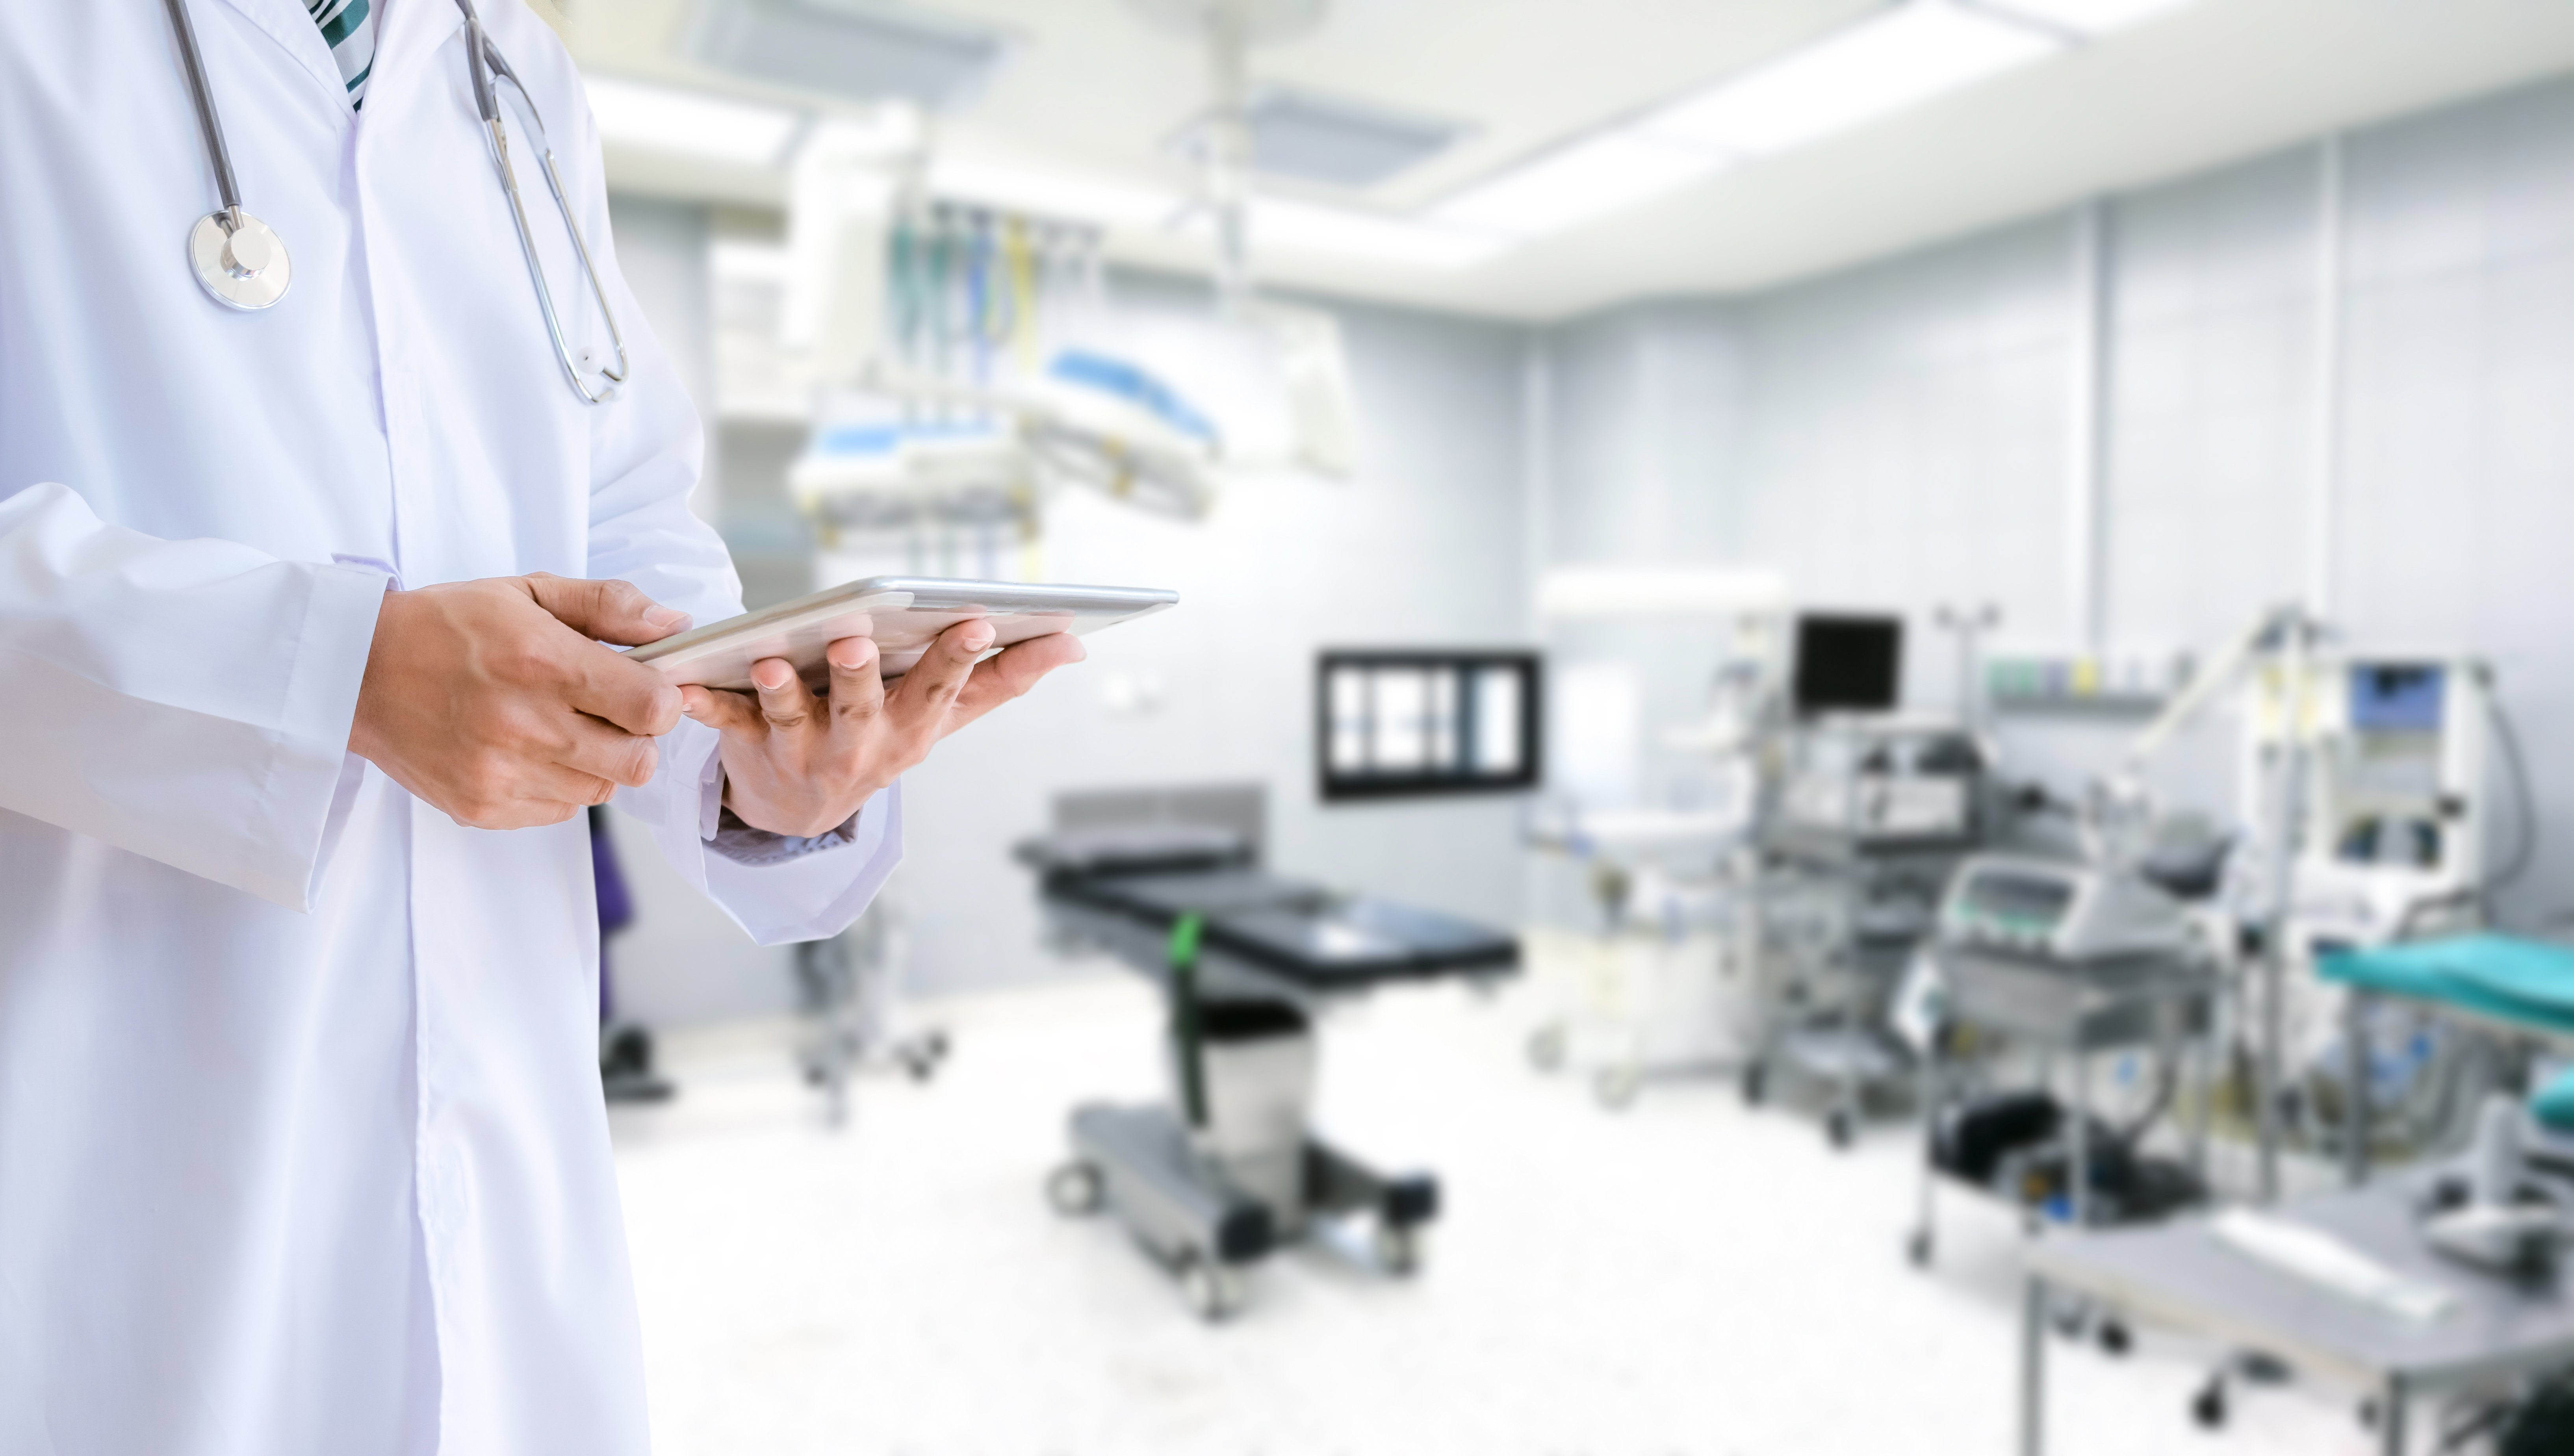 medical-team-and-the-doctor-in-the-hospital-operating-room